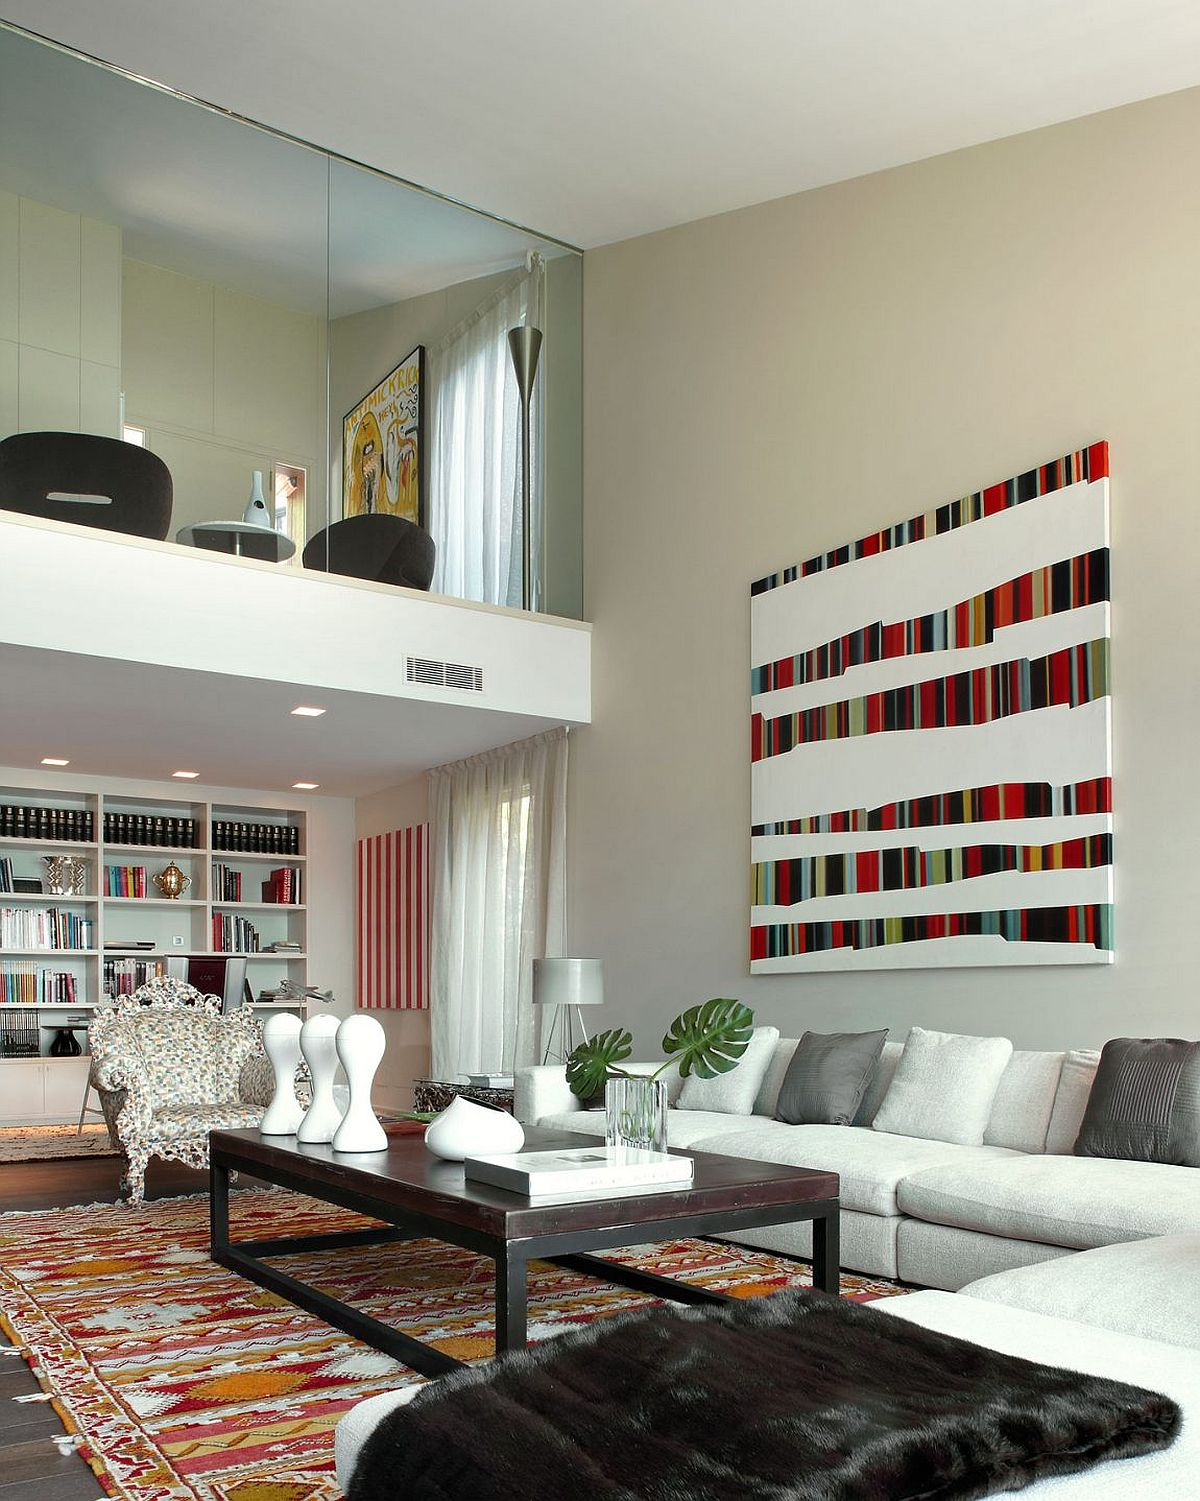 Art work, Bookshelf and rug bring color to the open living space